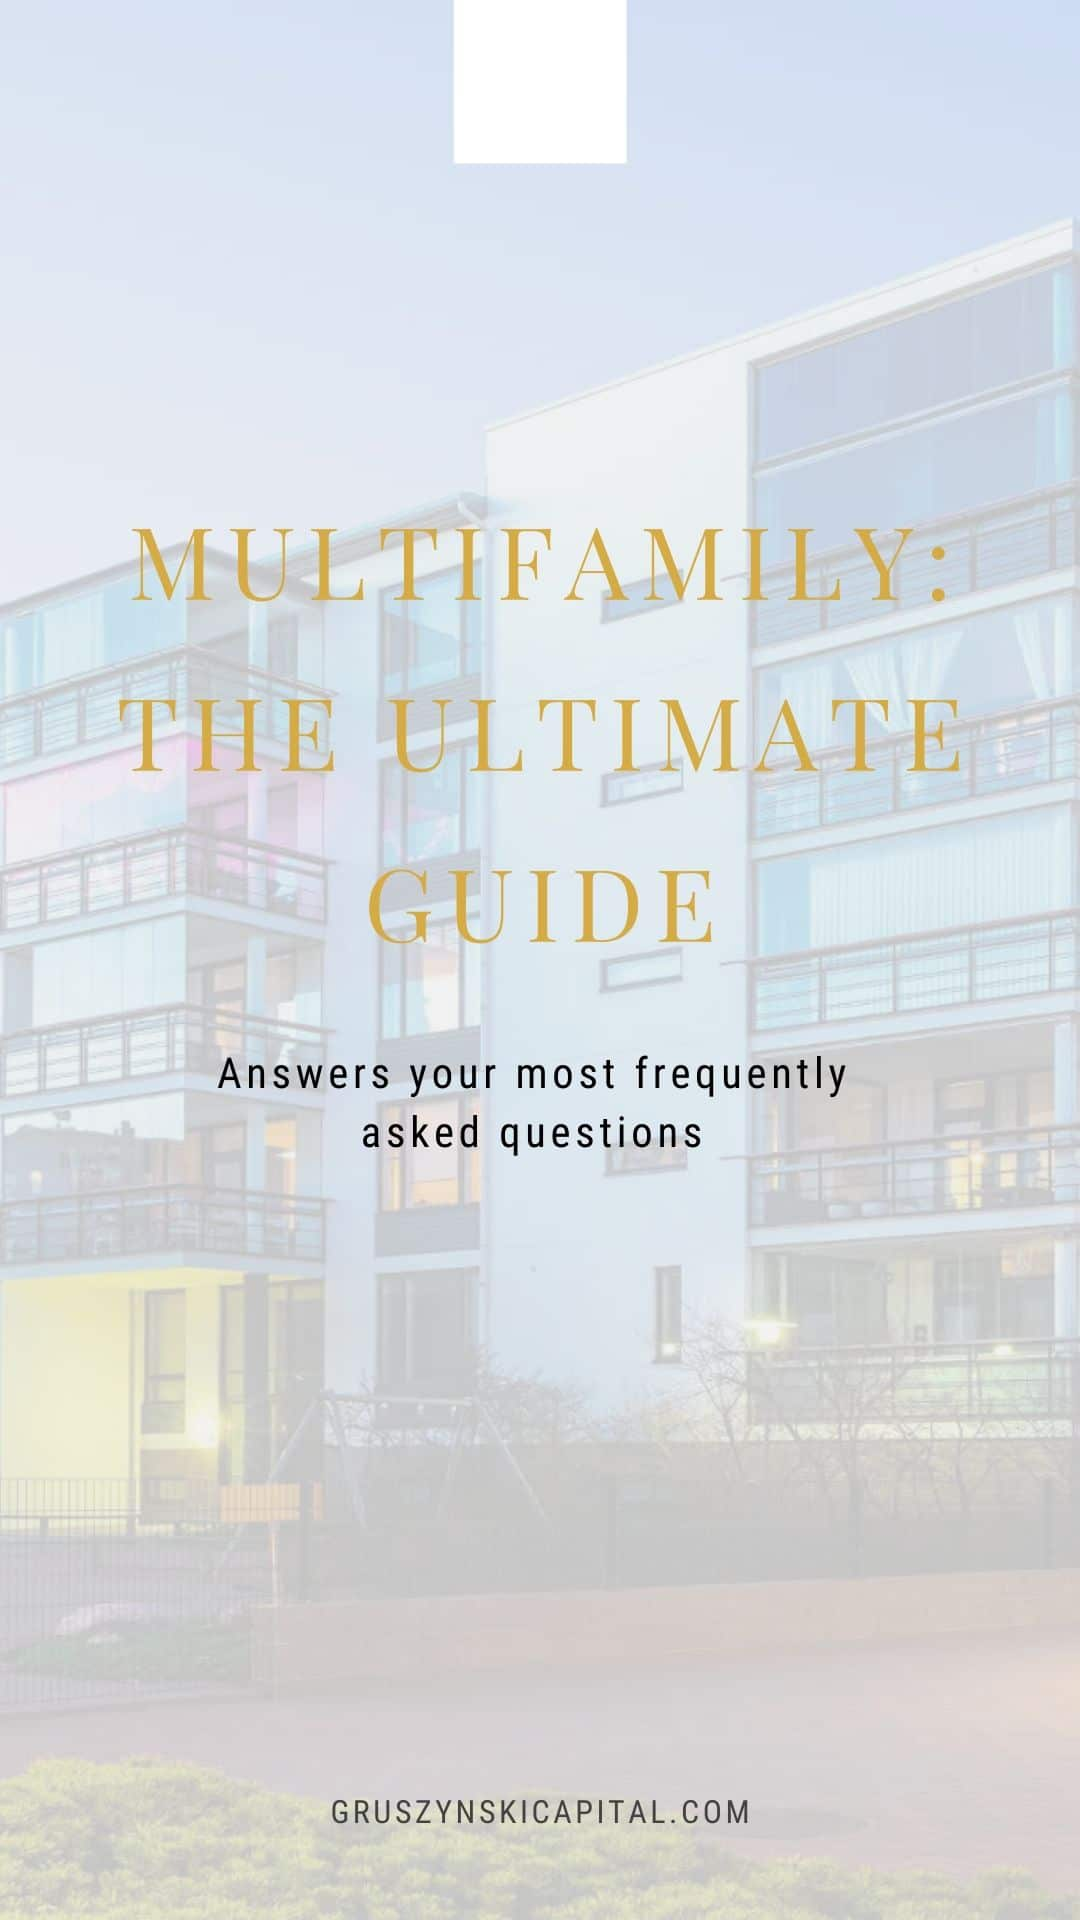 Image from Gruszynski Capital for the Ultimate Multifamily Guide